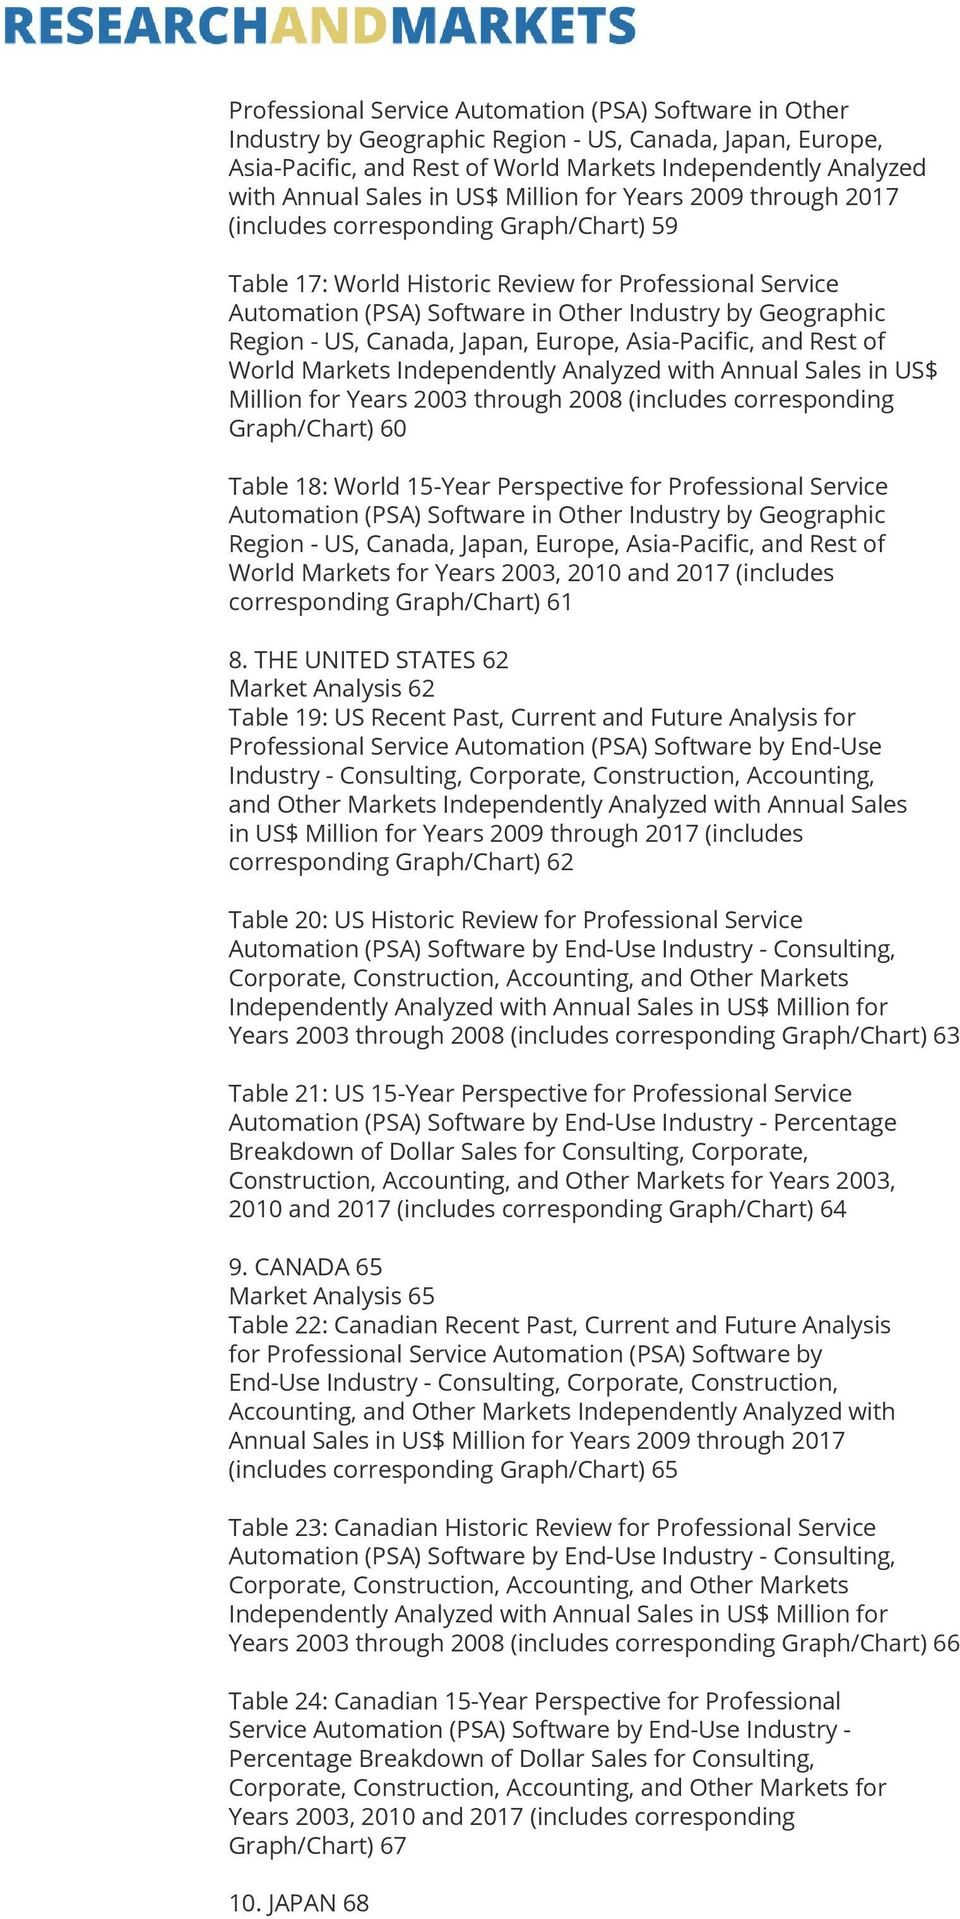 in US$ Graph/Chart) 60 Table 18: World 15-Year Perspective for Professional Service Automation (PSA) Software in Other Industry by Geographic World Markets for Years 2003, 2010 and 2017 (includes